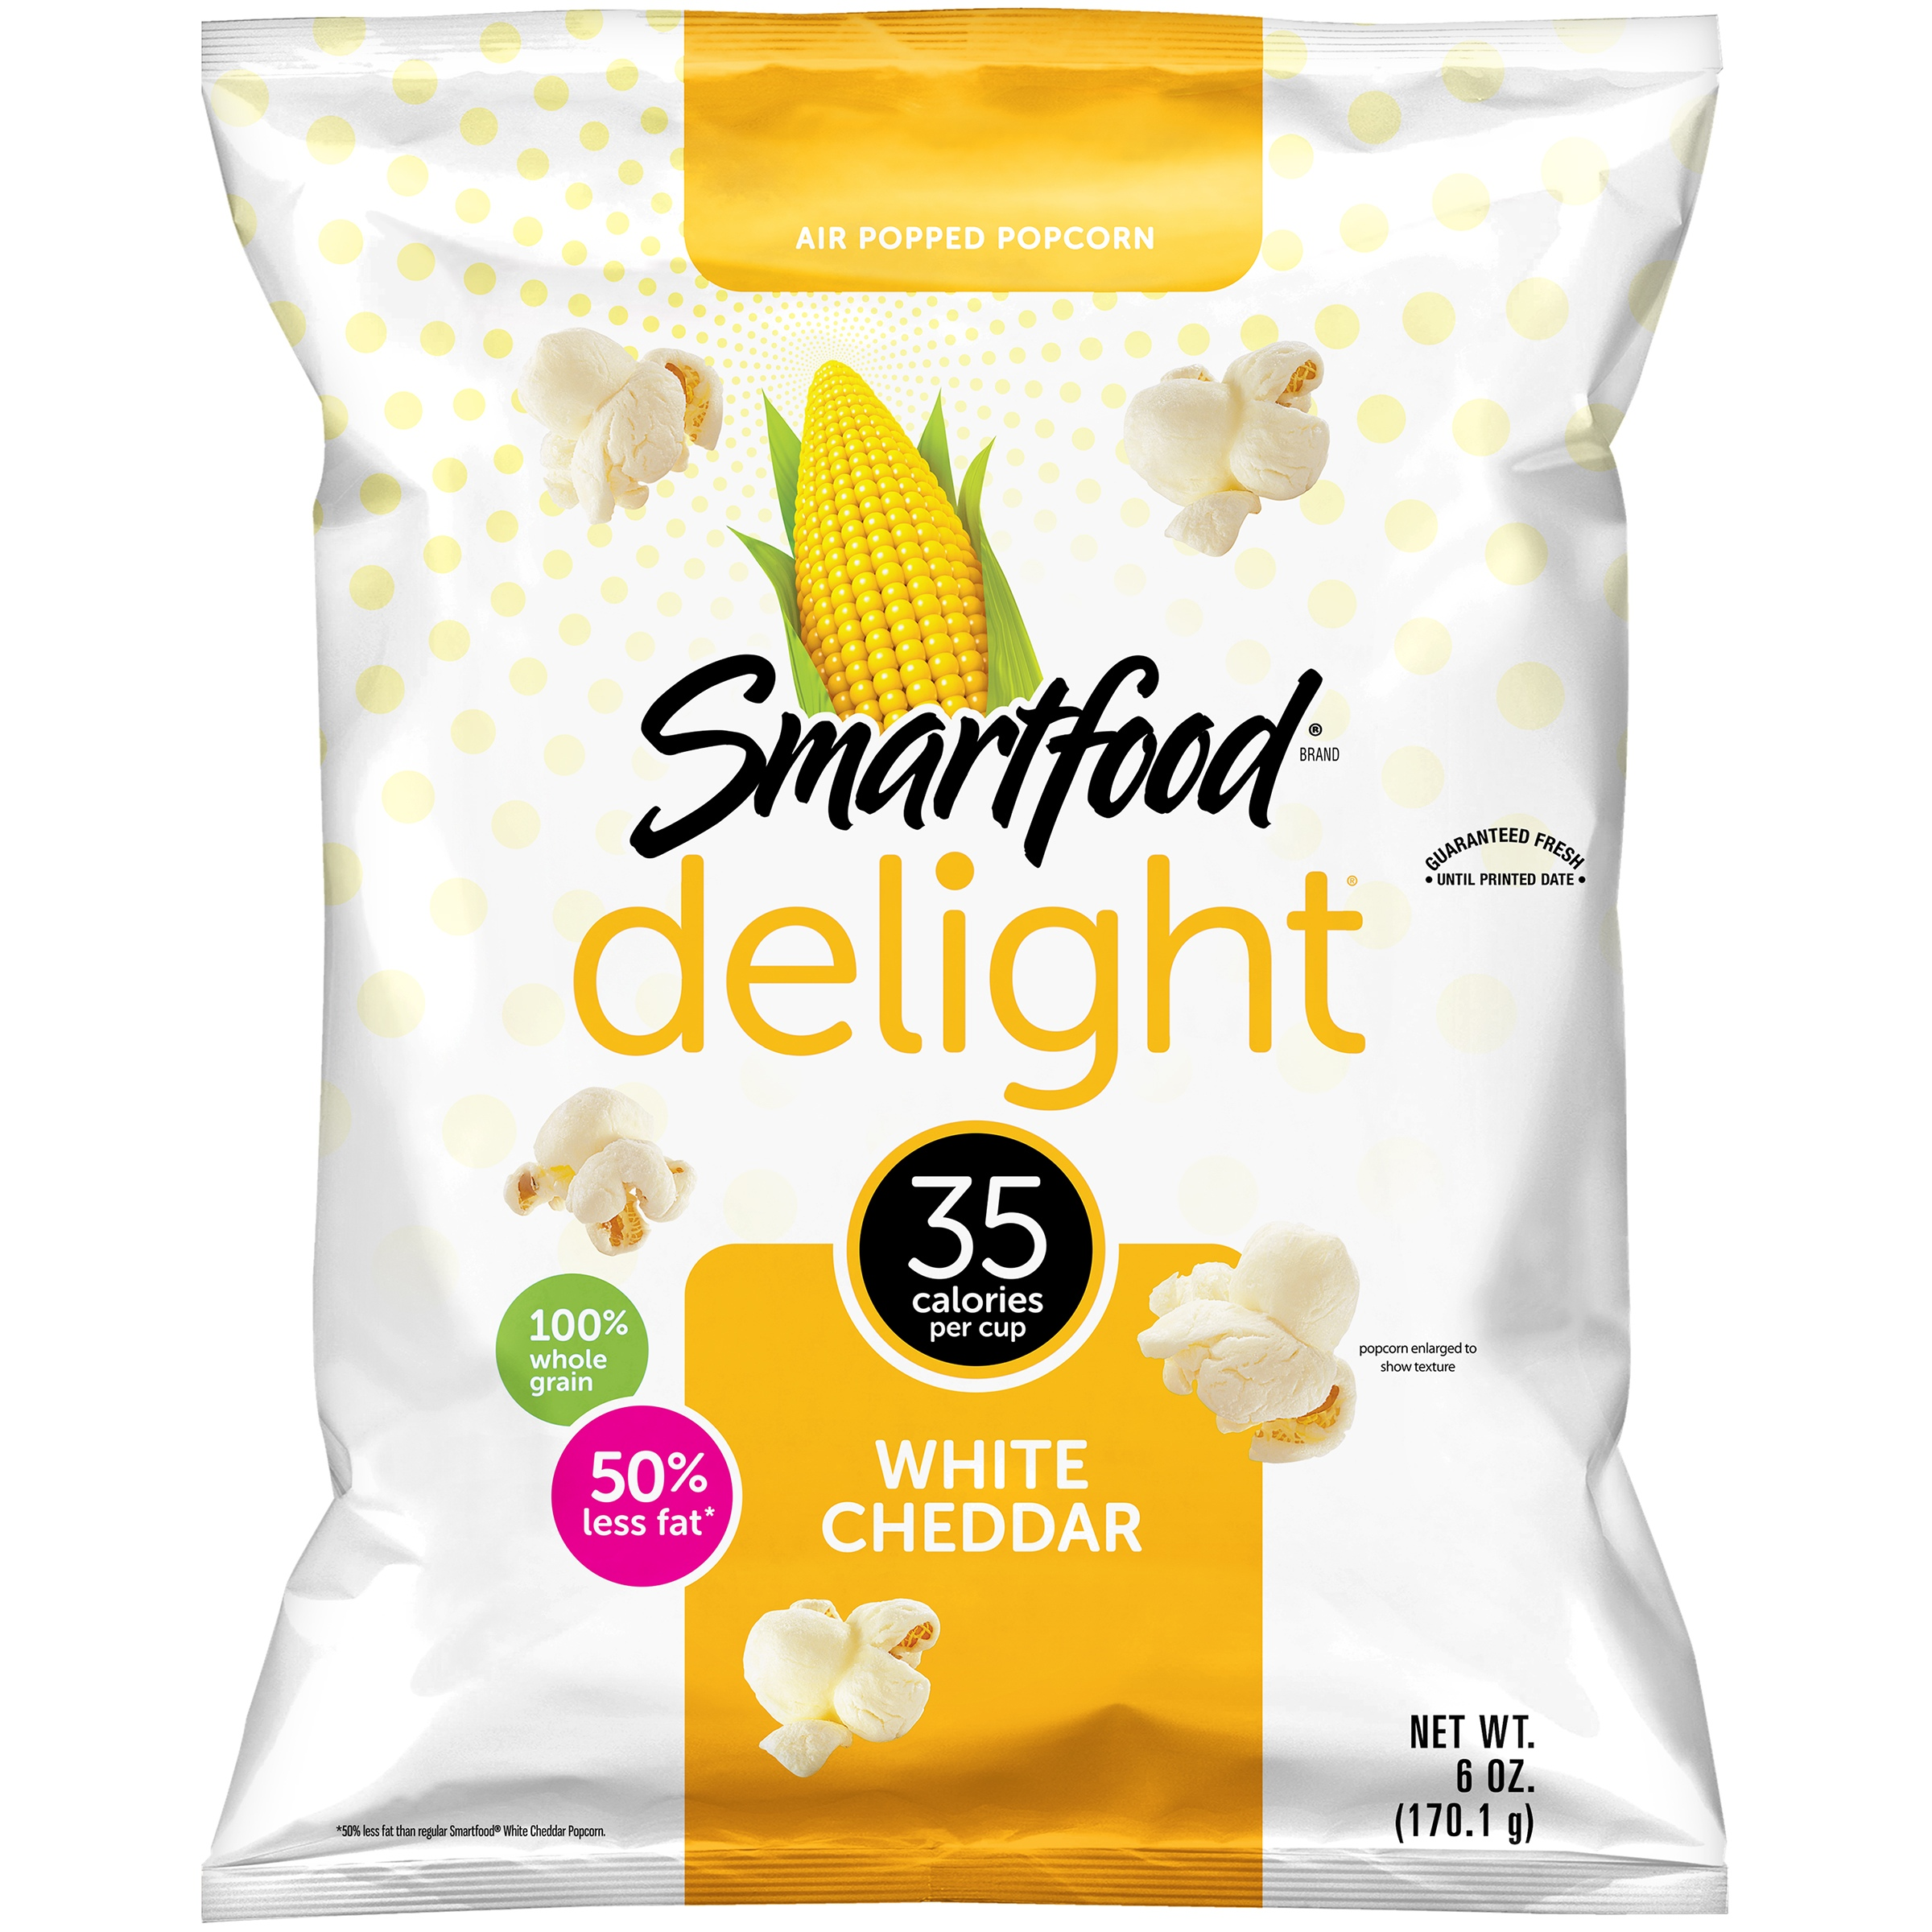 Smartfood Delight White Cheddar Popcorn, 6 oz Bag